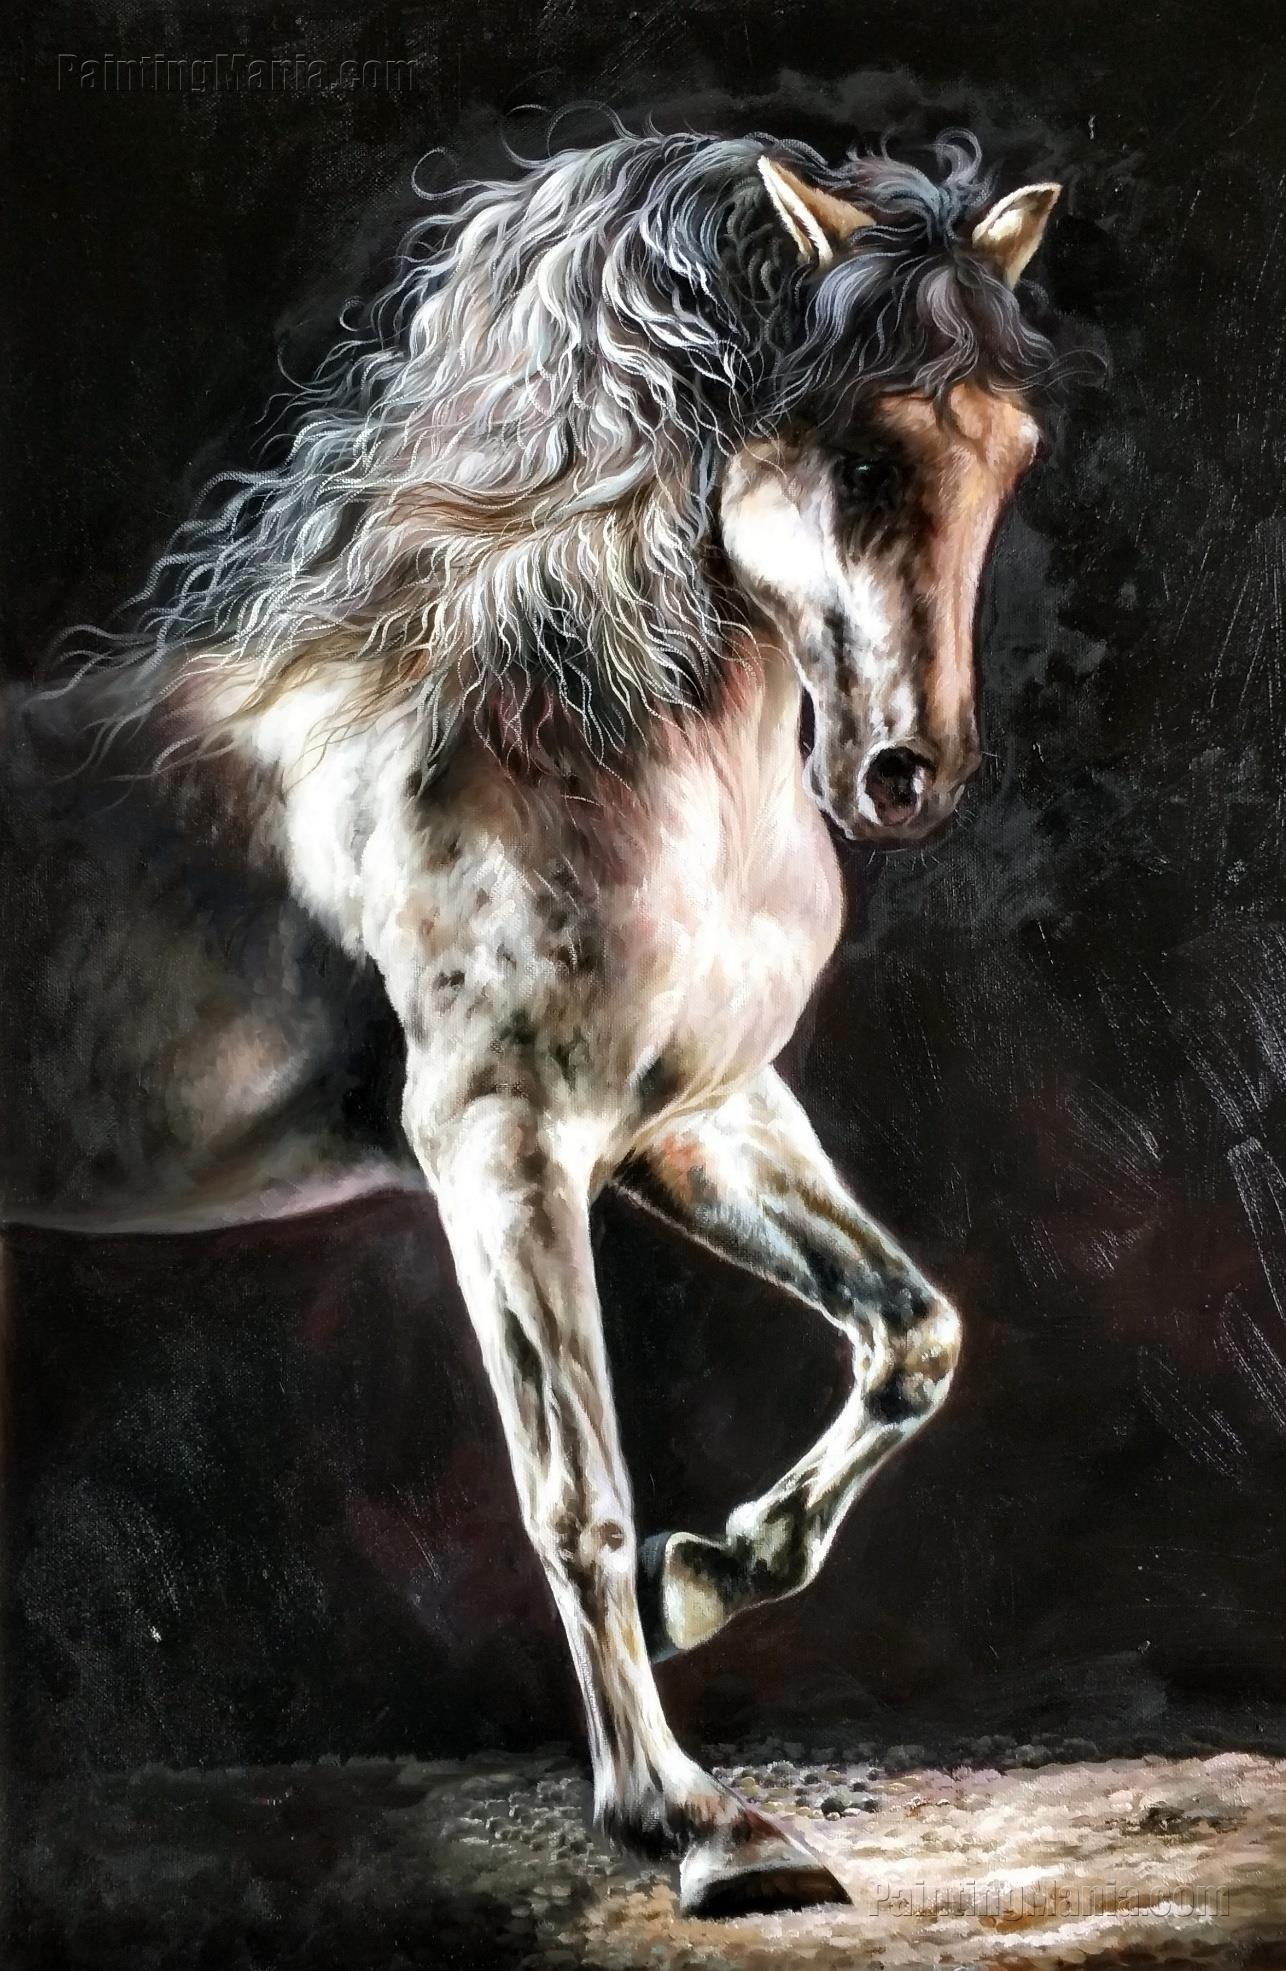 The Horse with Black Background